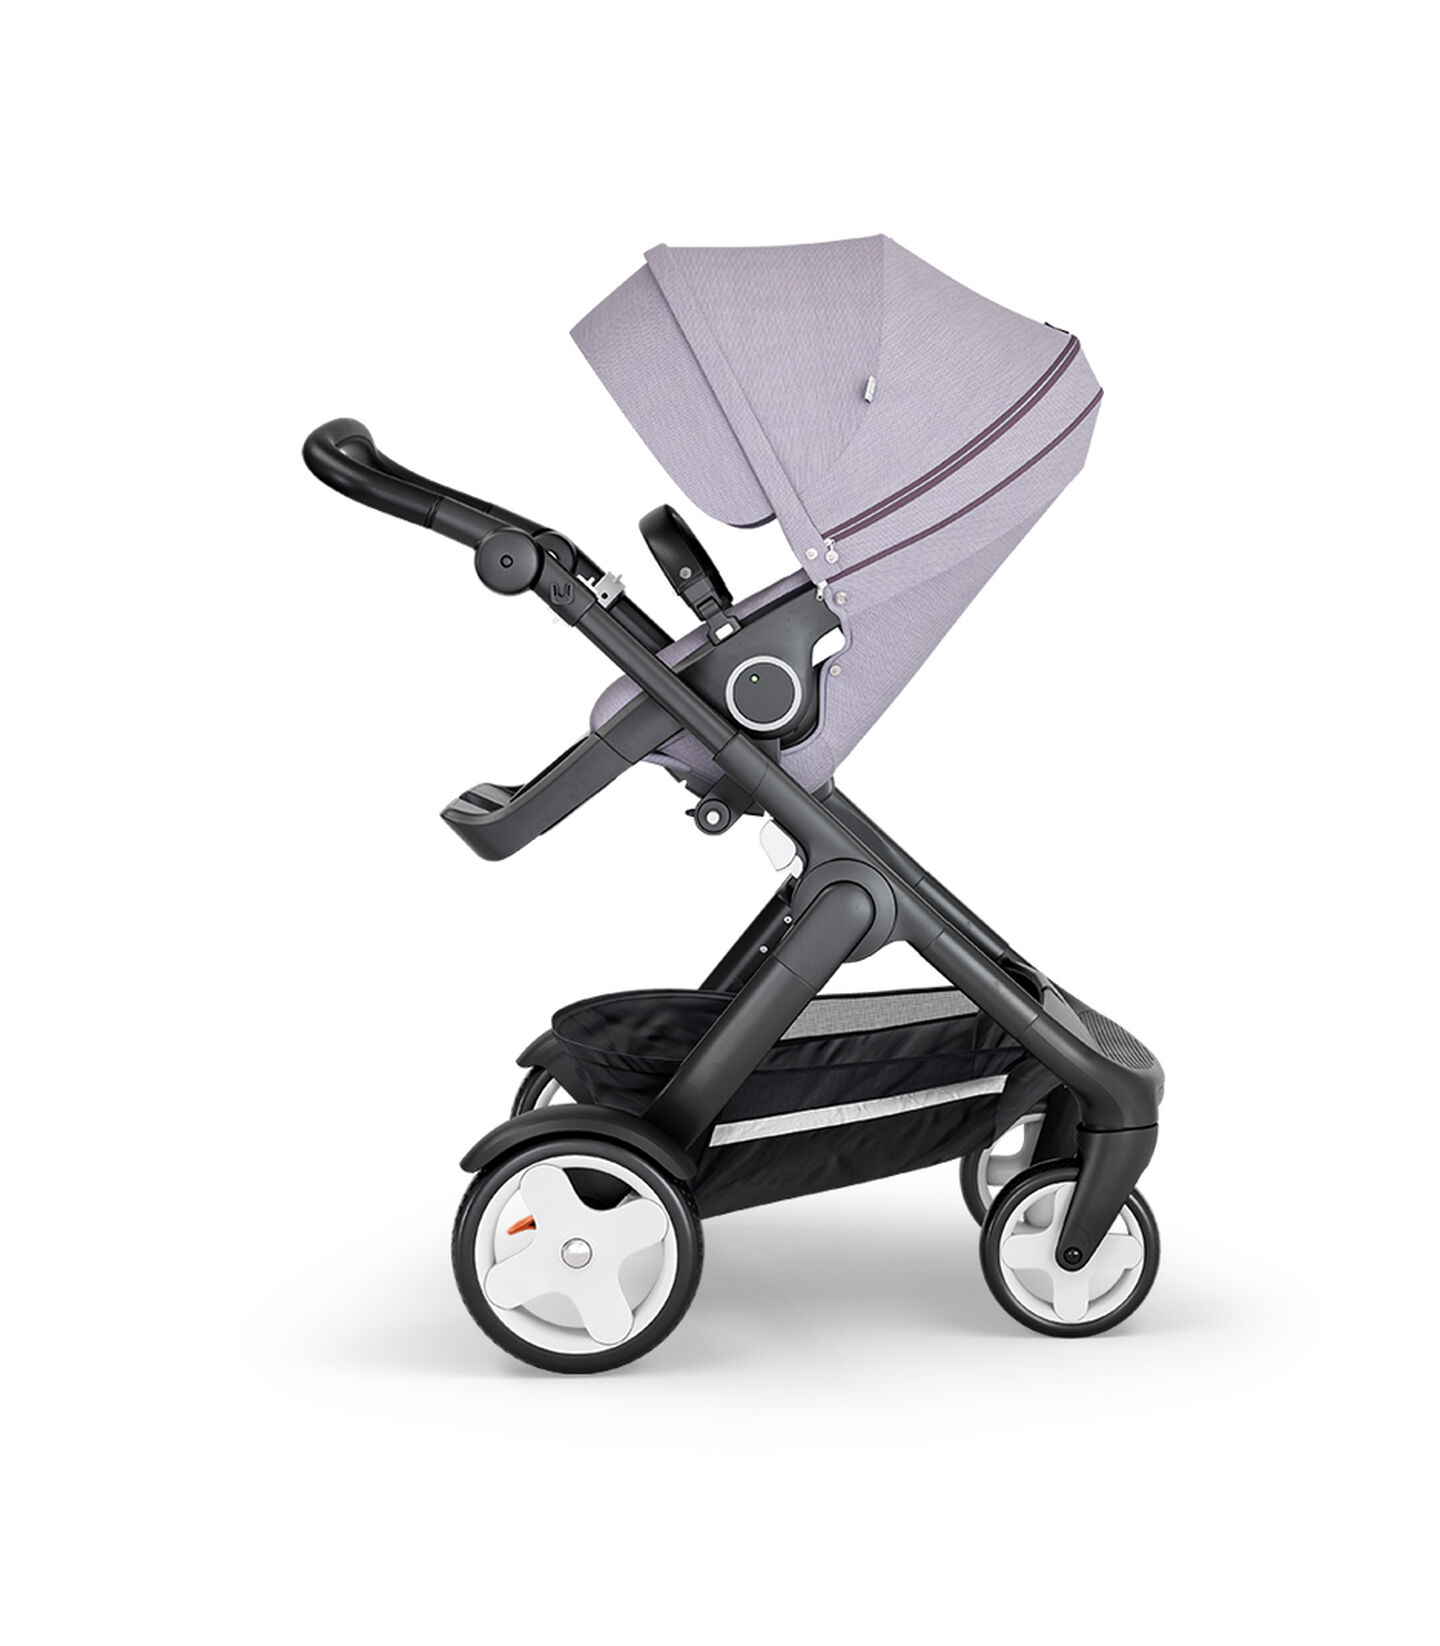 Stokke® Trailz™ with Black Chassis, Black Leatherette and Classic Wheels. Stokke® Stroller Seat, Brushed Lilac view 2